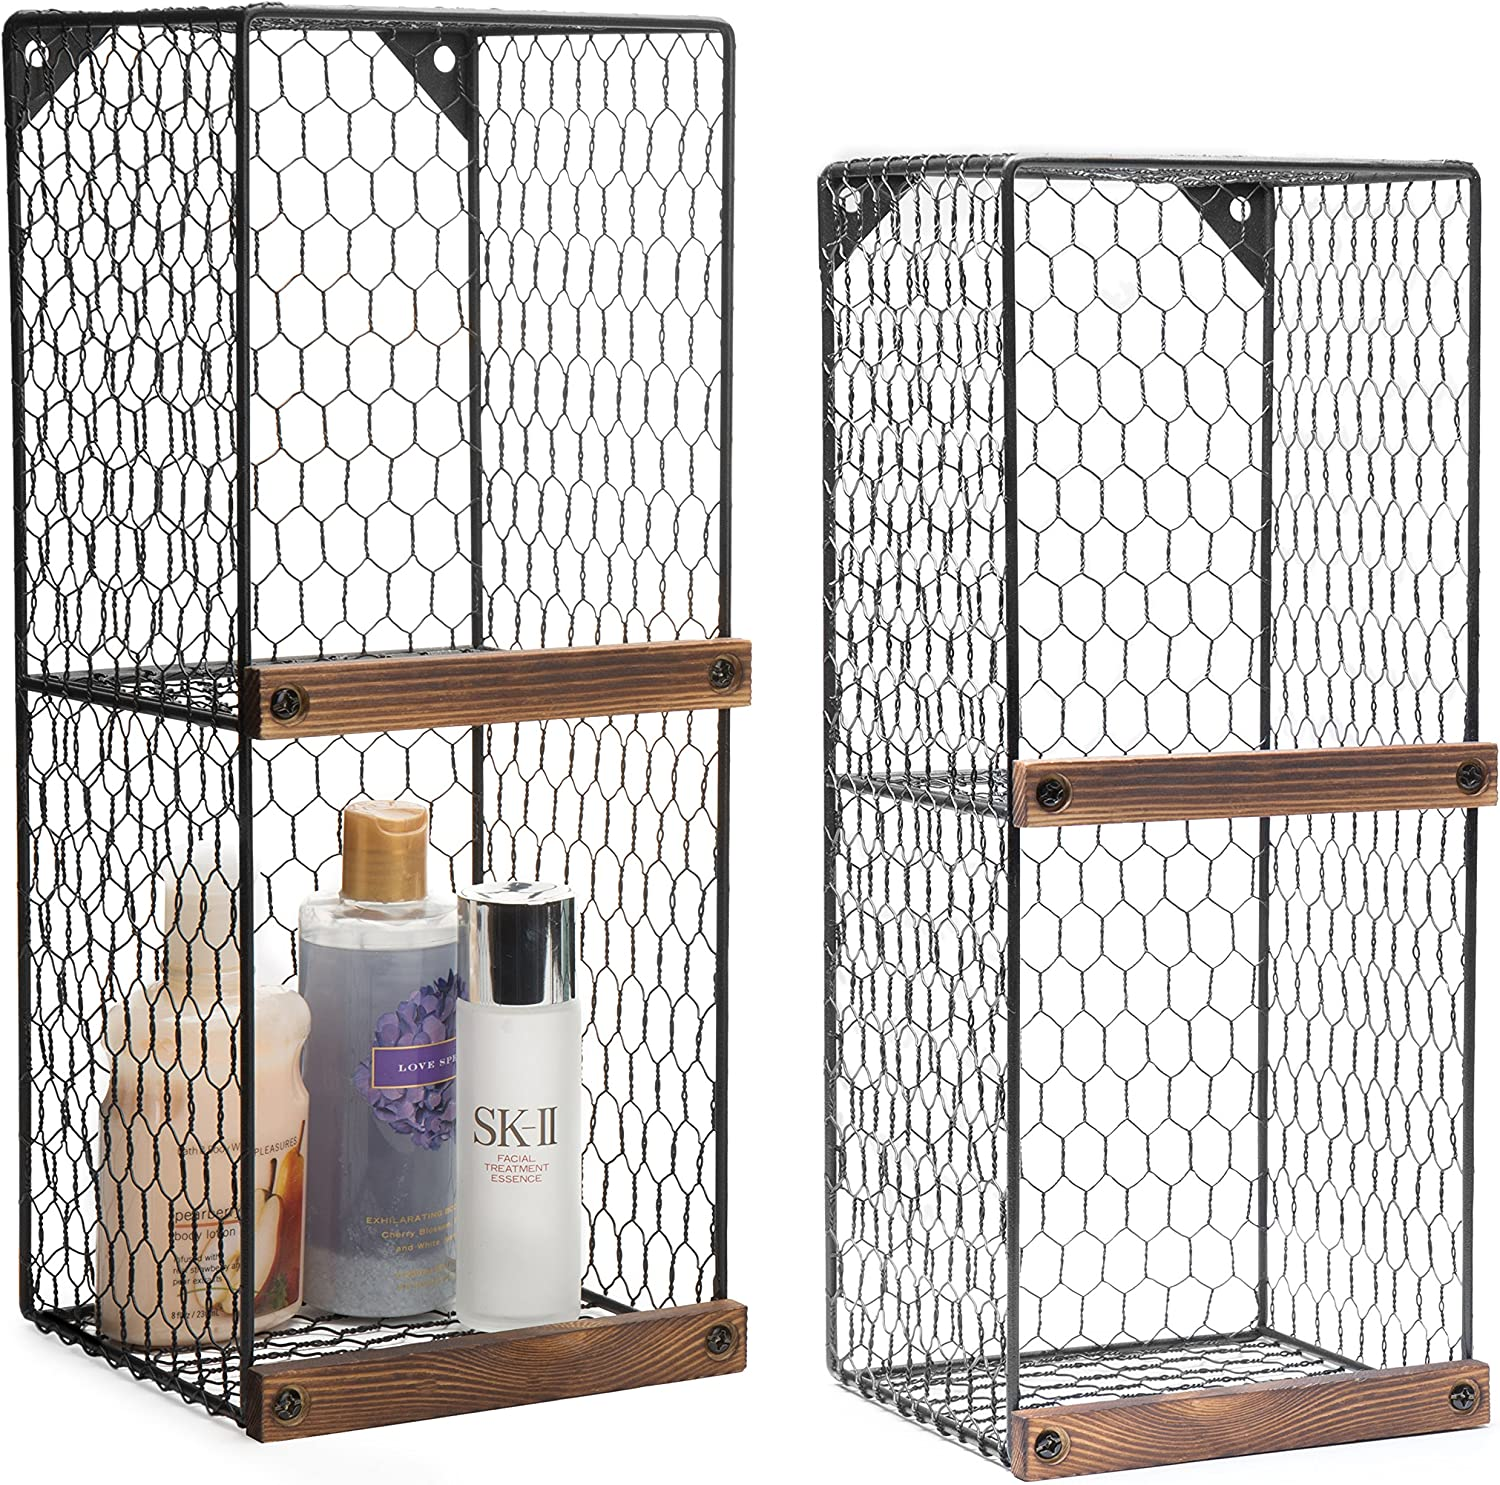 MyGift Set of 2 Wall-Mountable 2-Tier Chicken Wire Storage Shelves with Wood Ledges, Farmhouse Basket Bins